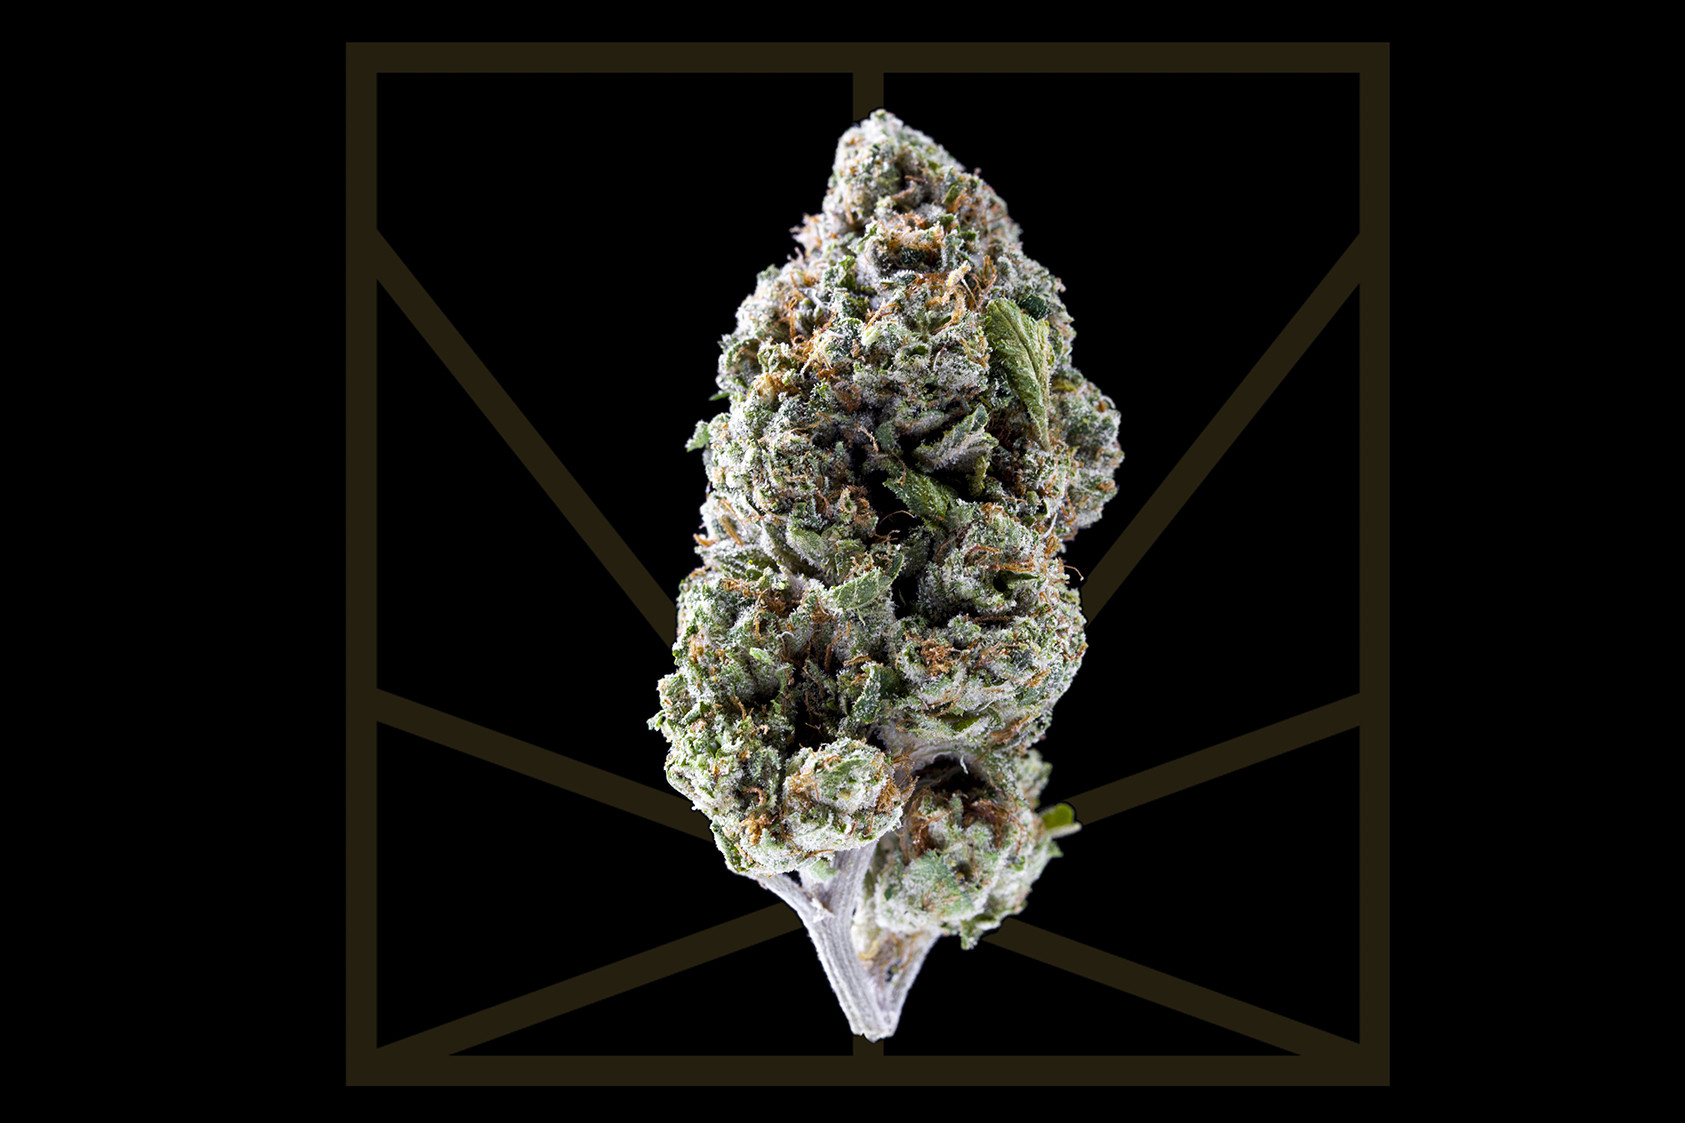 """<p><em>""""My kush pack so loud that now / I'm lounging in the shadows of clouds, wow.""""</em></p>  <p>OG Kush is the true definition of an OG. This multi-award-winning hybrid's imprint is all over some of today's best cannabis options. OG Kush has been used to create several phenotypes including SFV OG, Platinum OG and Louis XIII - all bonafide stars in their own right. OG Kush, like many of its descendants, has a distinct pine and citrus flavor. These small tight buds pack a big punch. OG Kush's euphoric and uplifting effects kick in swiftly like, """"Hey!"""" and last for hours. The body high is intense but not heavy enough to immobilize more experienced smokers.</p>"""